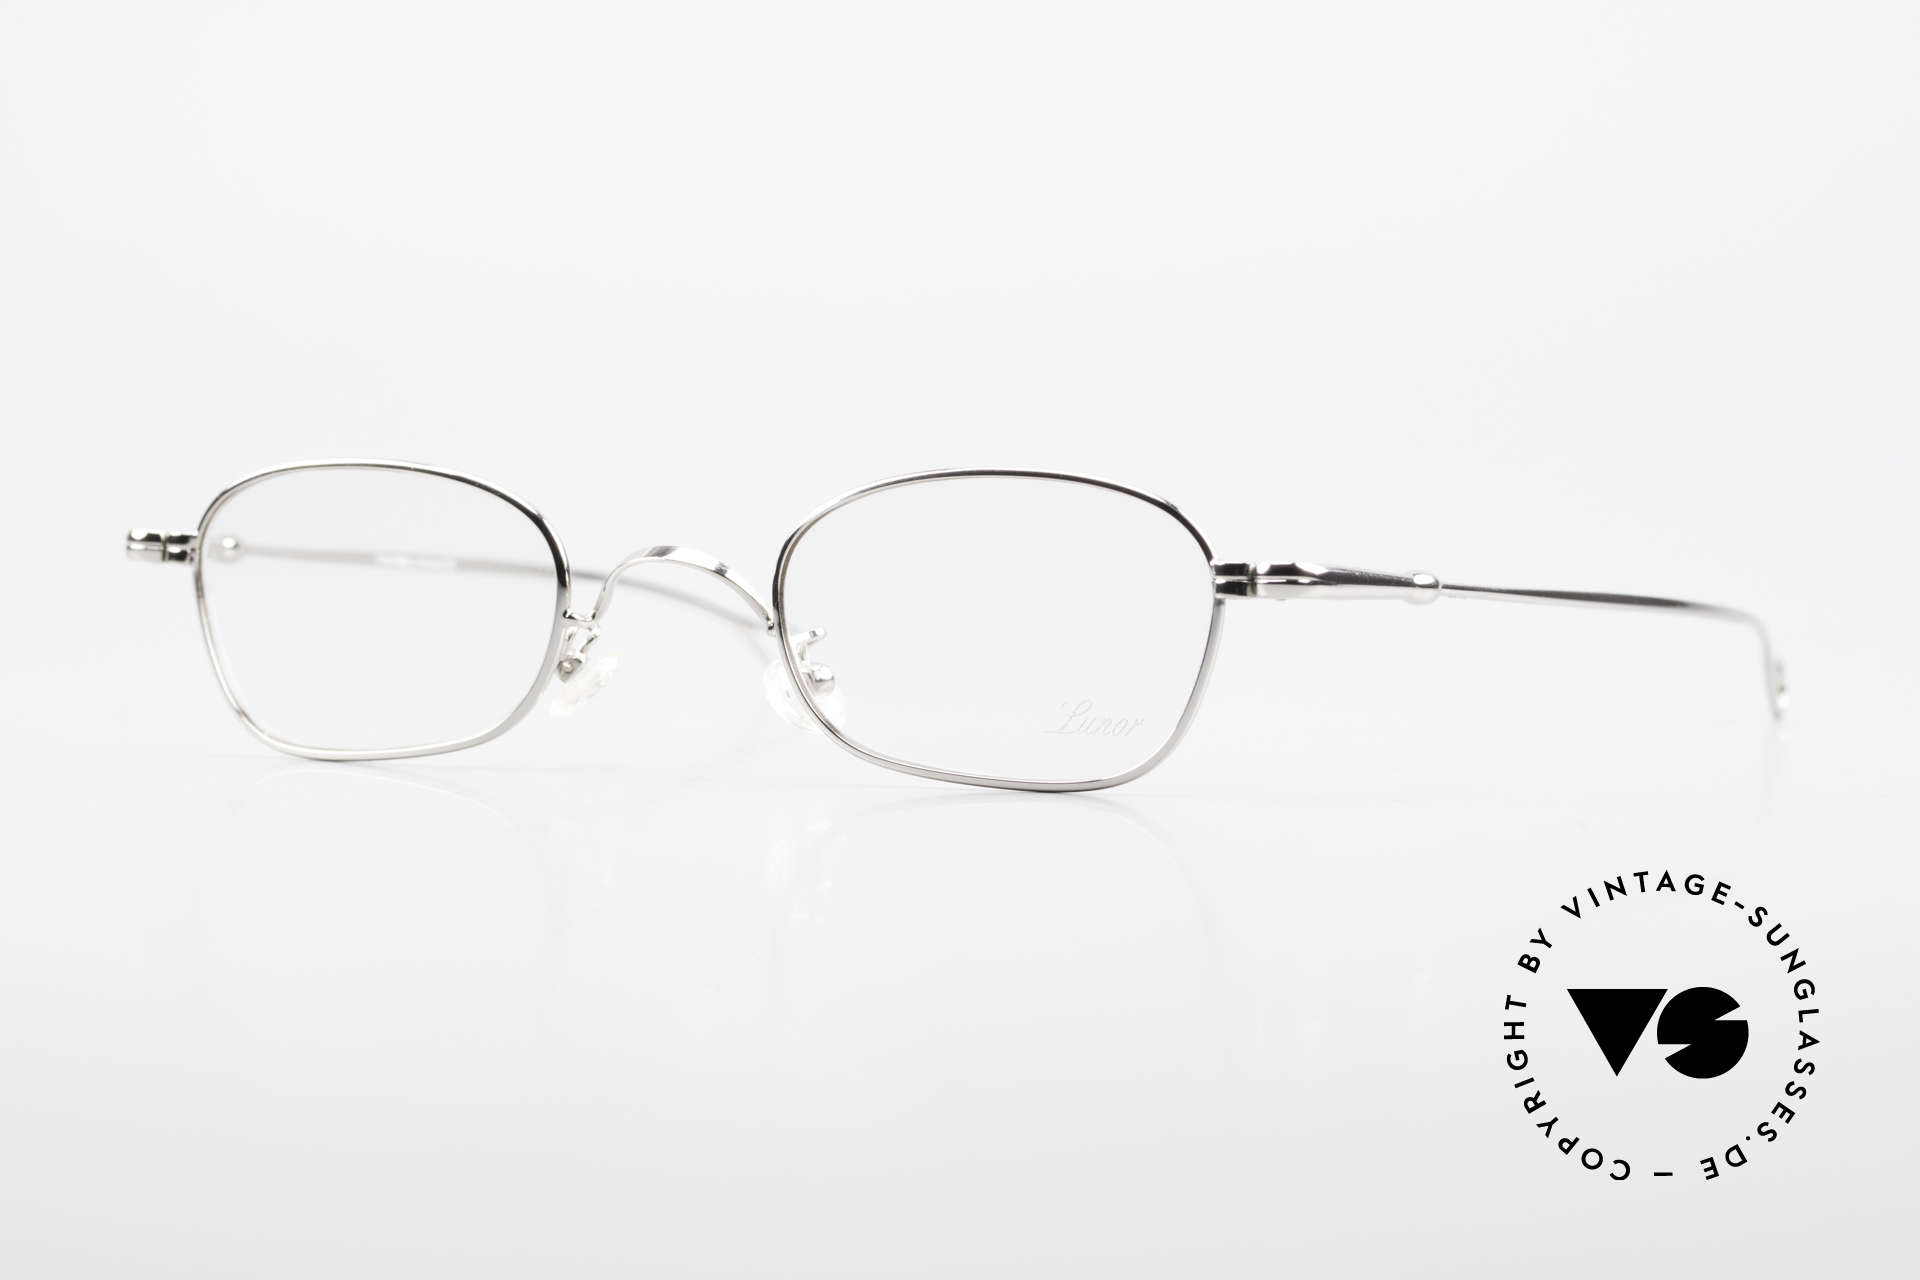 Lunor V 106 Full Metal Frame Platinum, LUNOR: honest craftsmanship with attention to details, Made for Men and Women